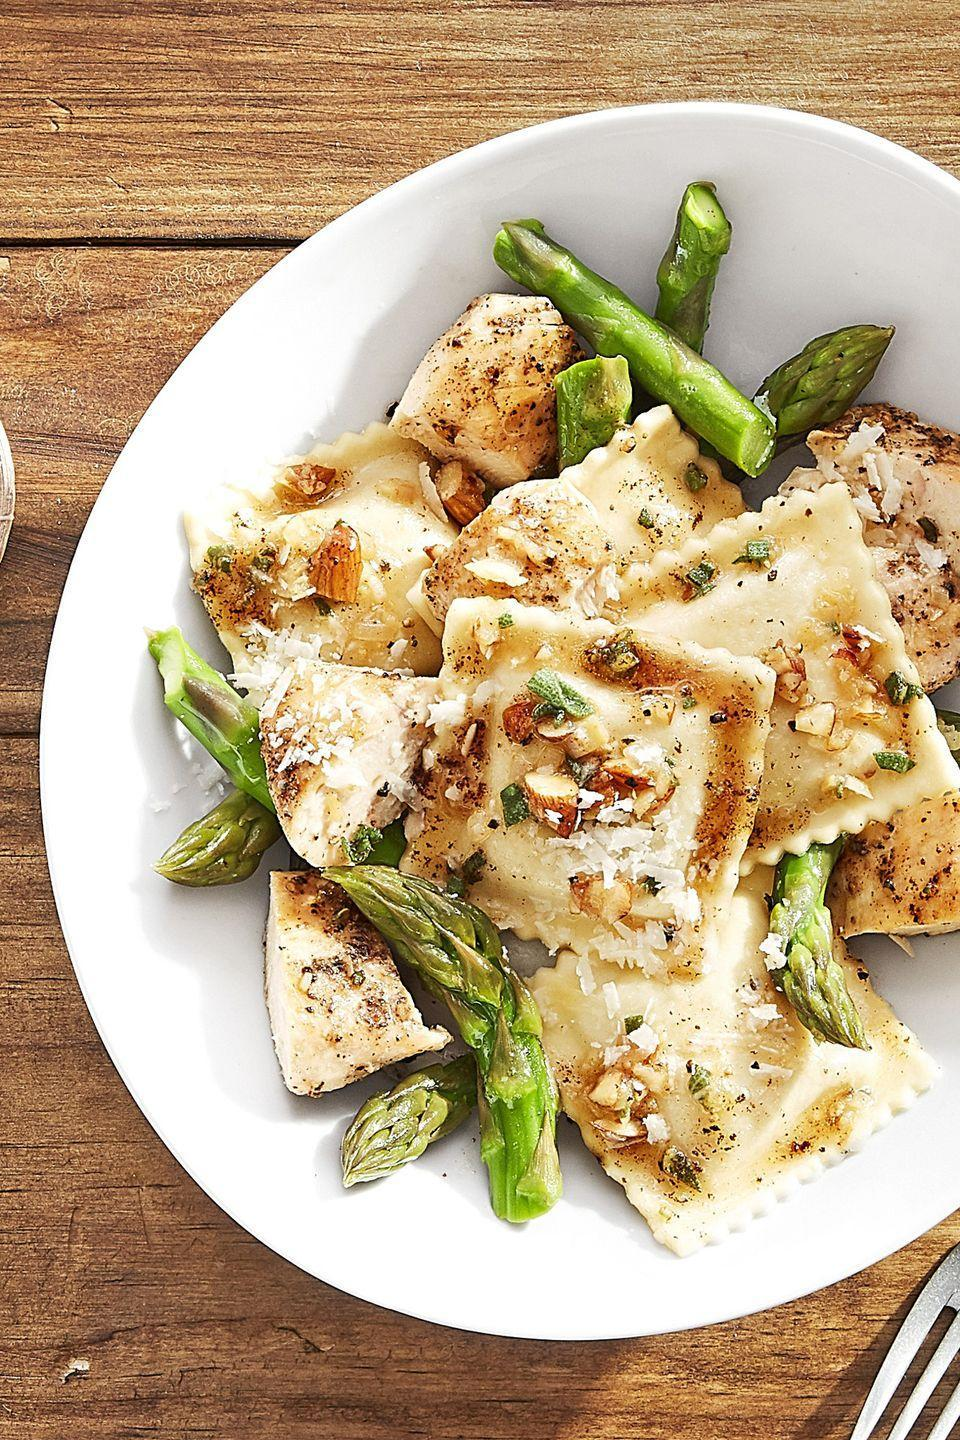 "<p>Make store-bought butternut squash ravioli your own by adding asparagus and seared chicken.</p><p><strong><a href=""https://www.countryliving.com/food-drinks/recipes/a44277/butternut-squash-ravioli-seared-chicken-recipe/"" rel=""nofollow noopener"" target=""_blank"" data-ylk=""slk:Get the recipe."" class=""link rapid-noclick-resp"">Get the recipe.</a></strong><br></p><p><a class=""link rapid-noclick-resp"" href=""https://www.amazon.com/Cook-Home-Stainless-Stockpot-Canning/dp/B00Z4TSE32?tag=syn-yahoo-20&ascsubtag=%5Bartid%7C10050.g.680%5Bsrc%7Cyahoo-us"" rel=""nofollow noopener"" target=""_blank"" data-ylk=""slk:SHOP STOCKPOTS"">SHOP STOCKPOTS</a> </p>"